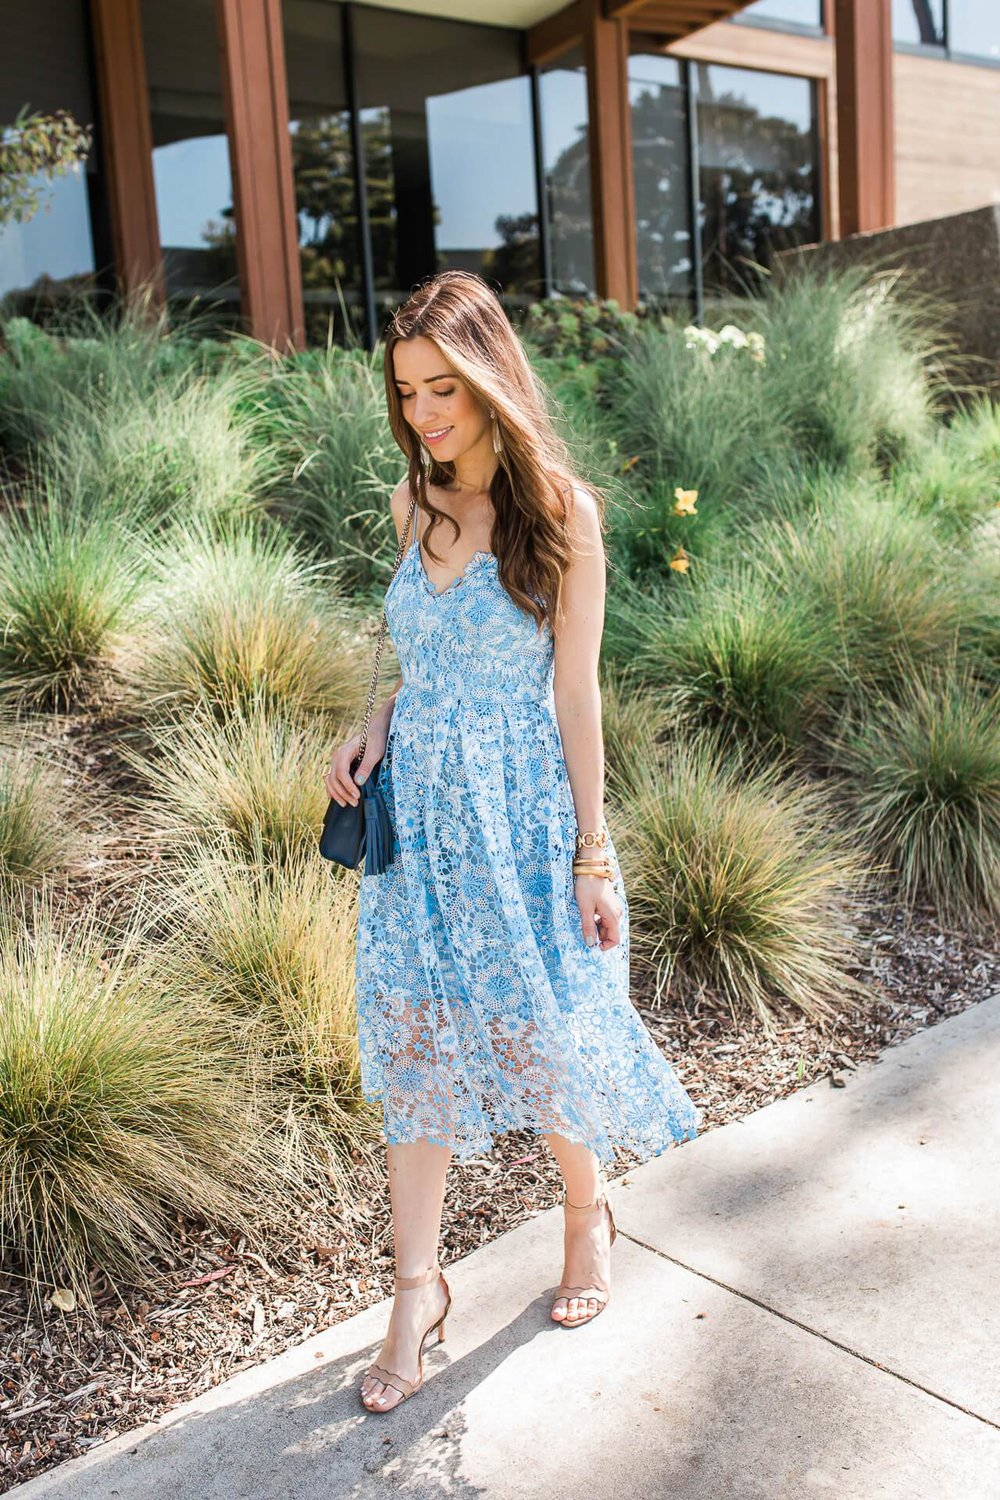 la-style-blogger-lace-dress.jpg